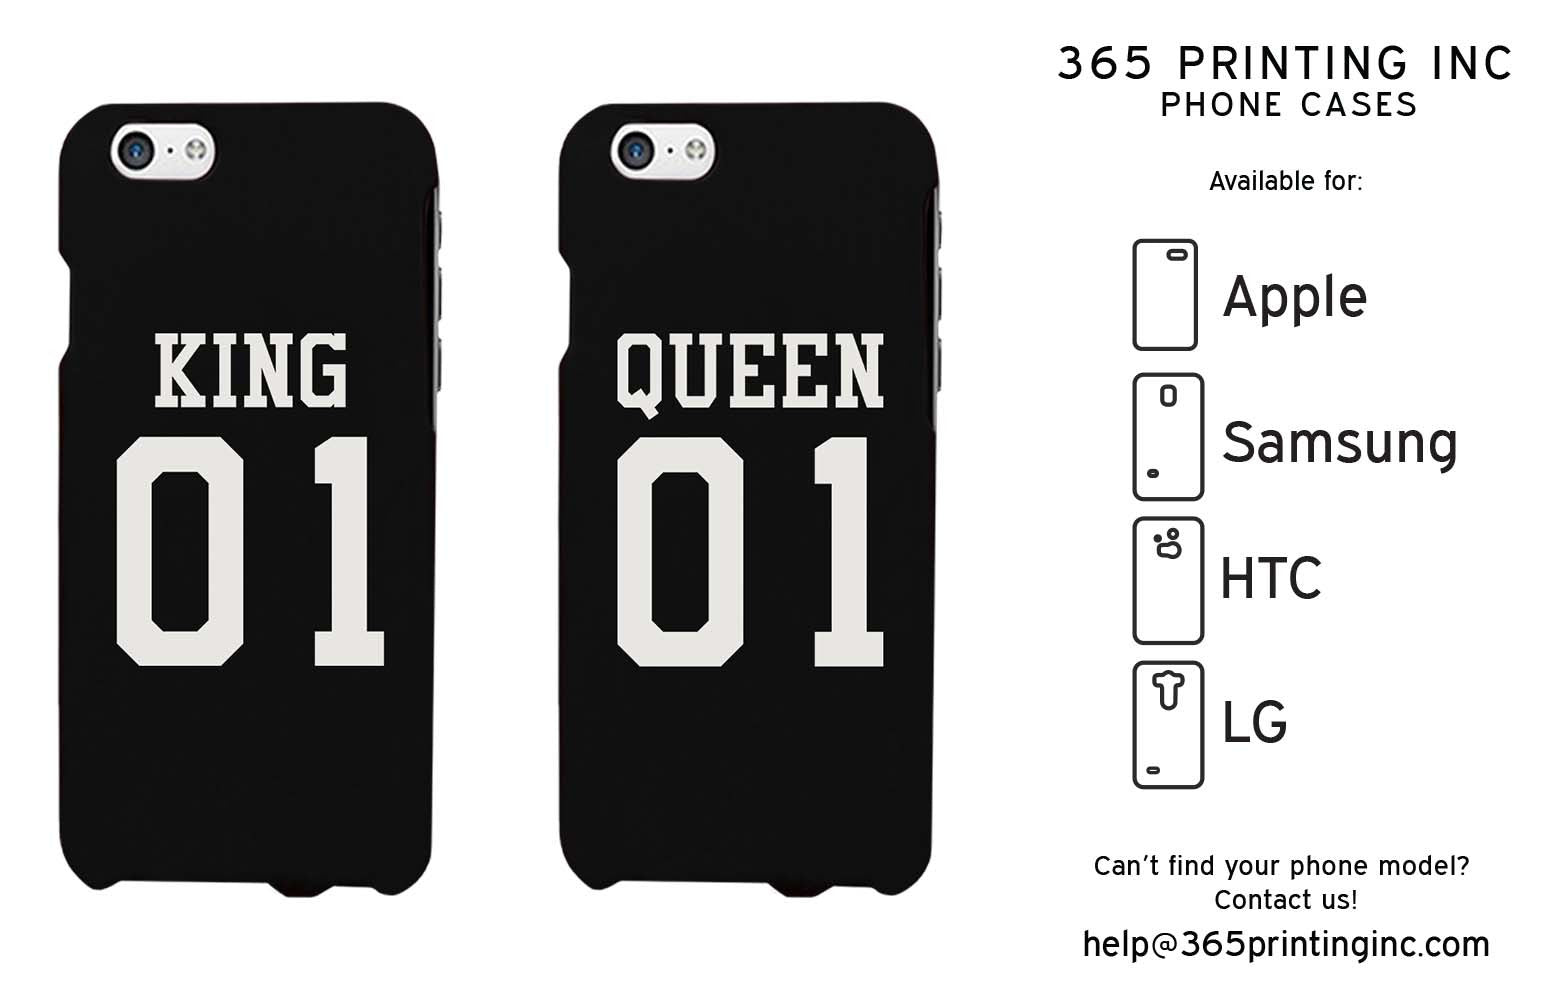 44ef8b0b20 King 01 Queen 01 Couple Phone Cases Set Cute Matching Phone Cover Galaxy  Iphone - 365INLOVE